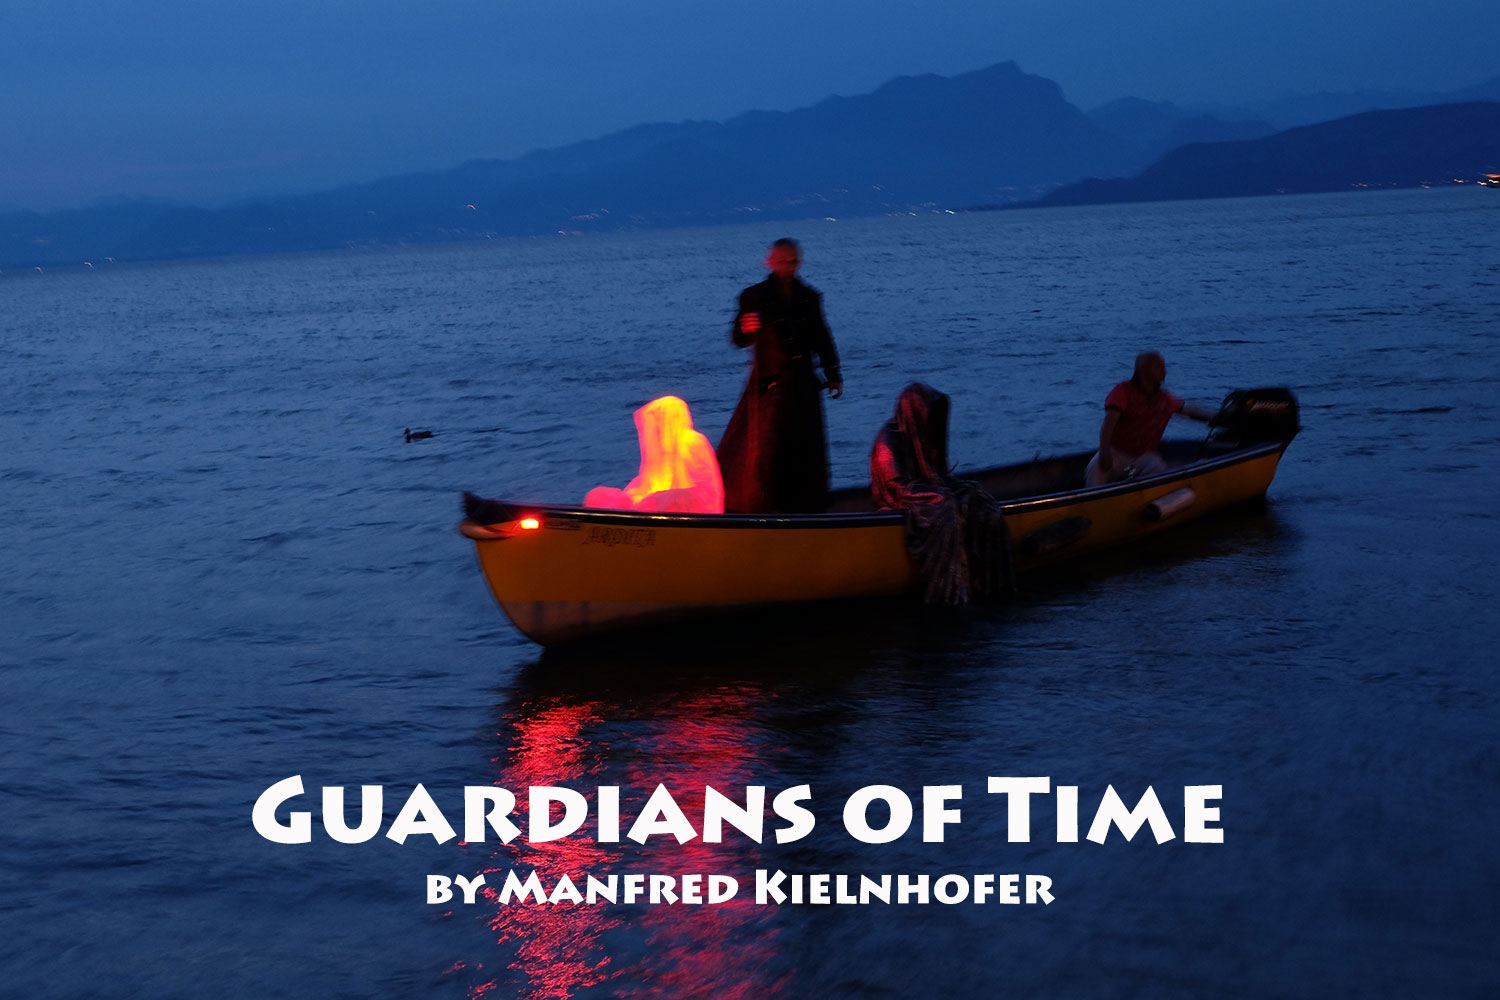 lazise-largo-de-guarda-italia--kouba-designkooperative-austria-guardians-of-time-manfred-kili-kielnhofer-contemporary-art-design-arts-arte-sculpture-theater-foto-film-performnce-avalon-ferryman-3852